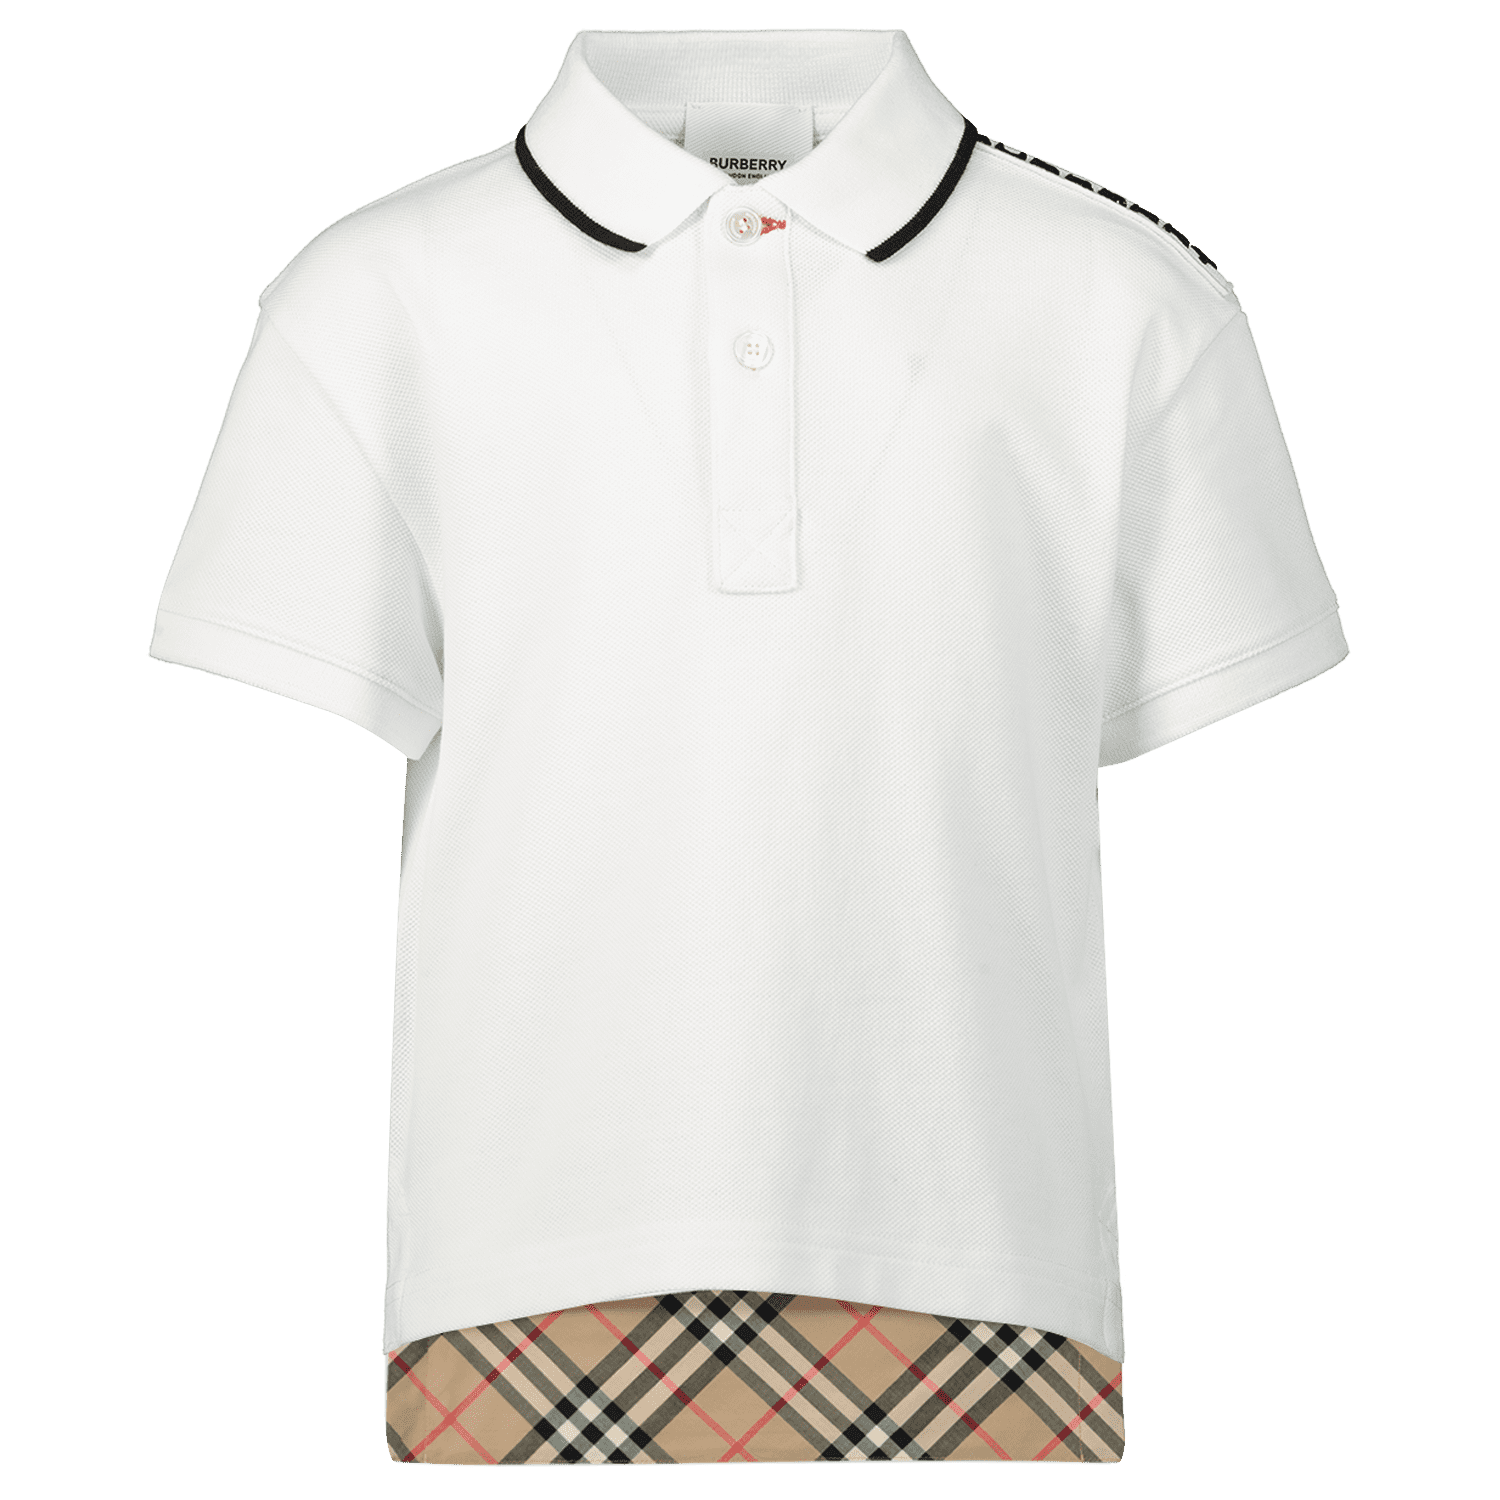 7d2adc55 Picture of Burberry 8013597 kids polo shirt white